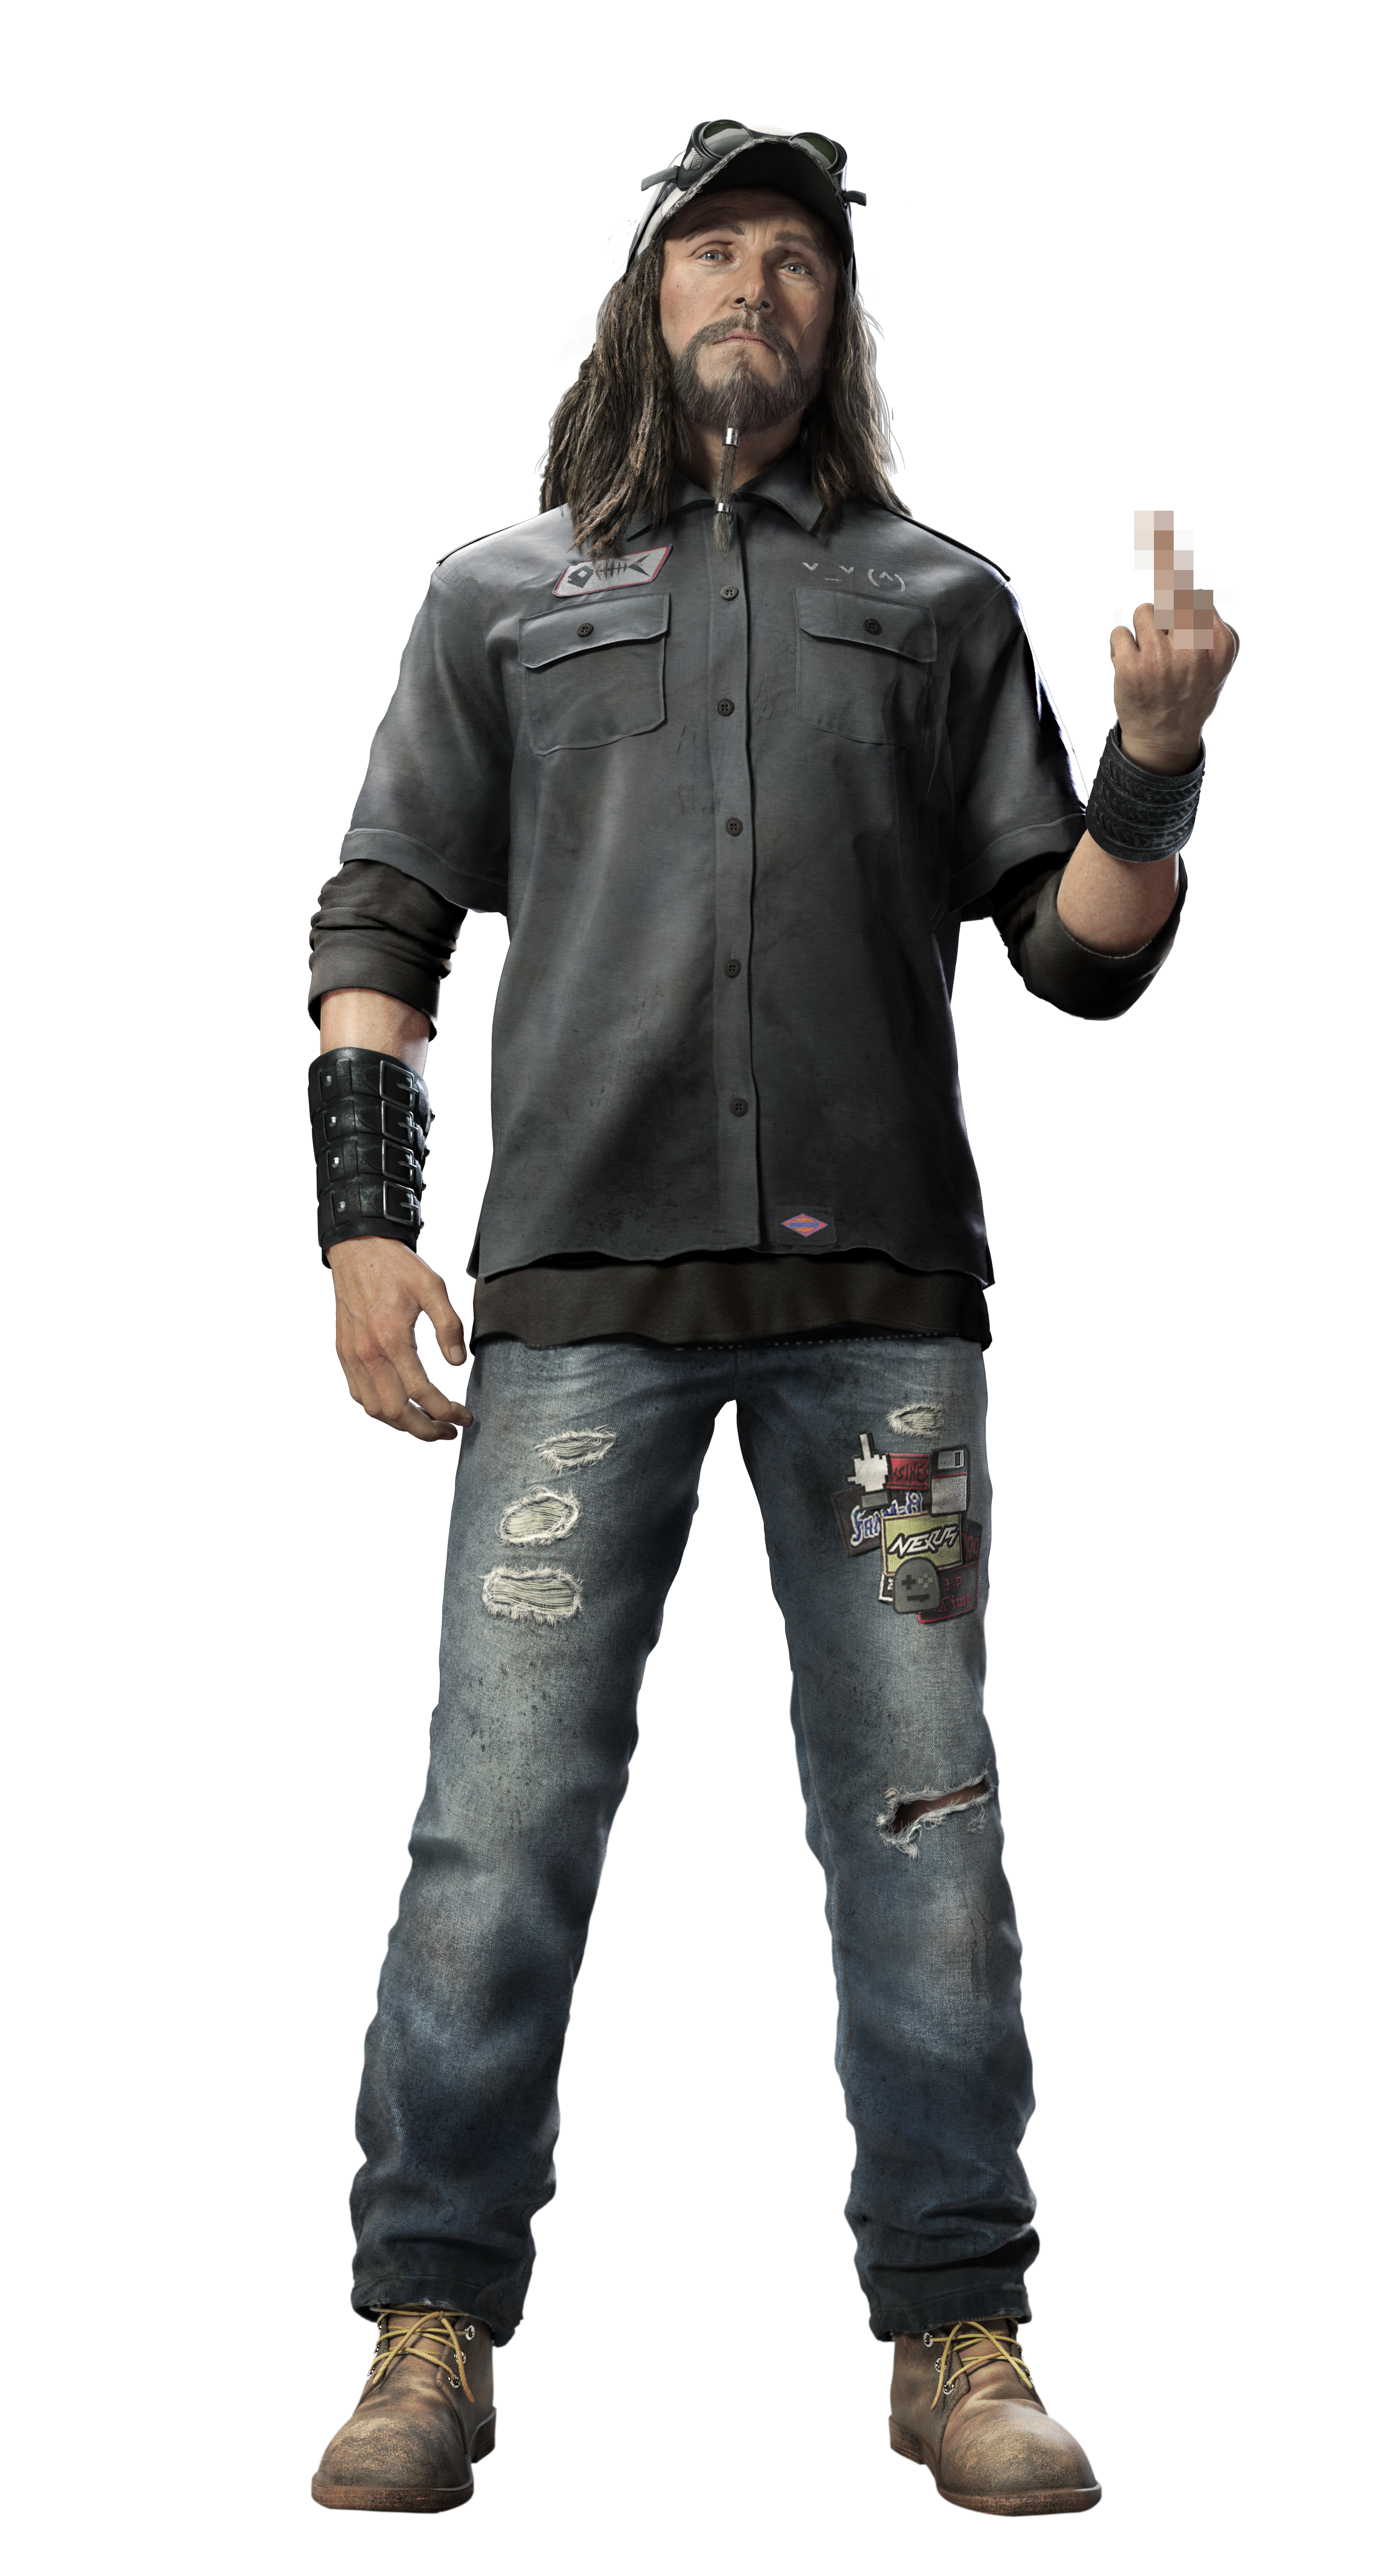 Watch dogs 2 clothing stores